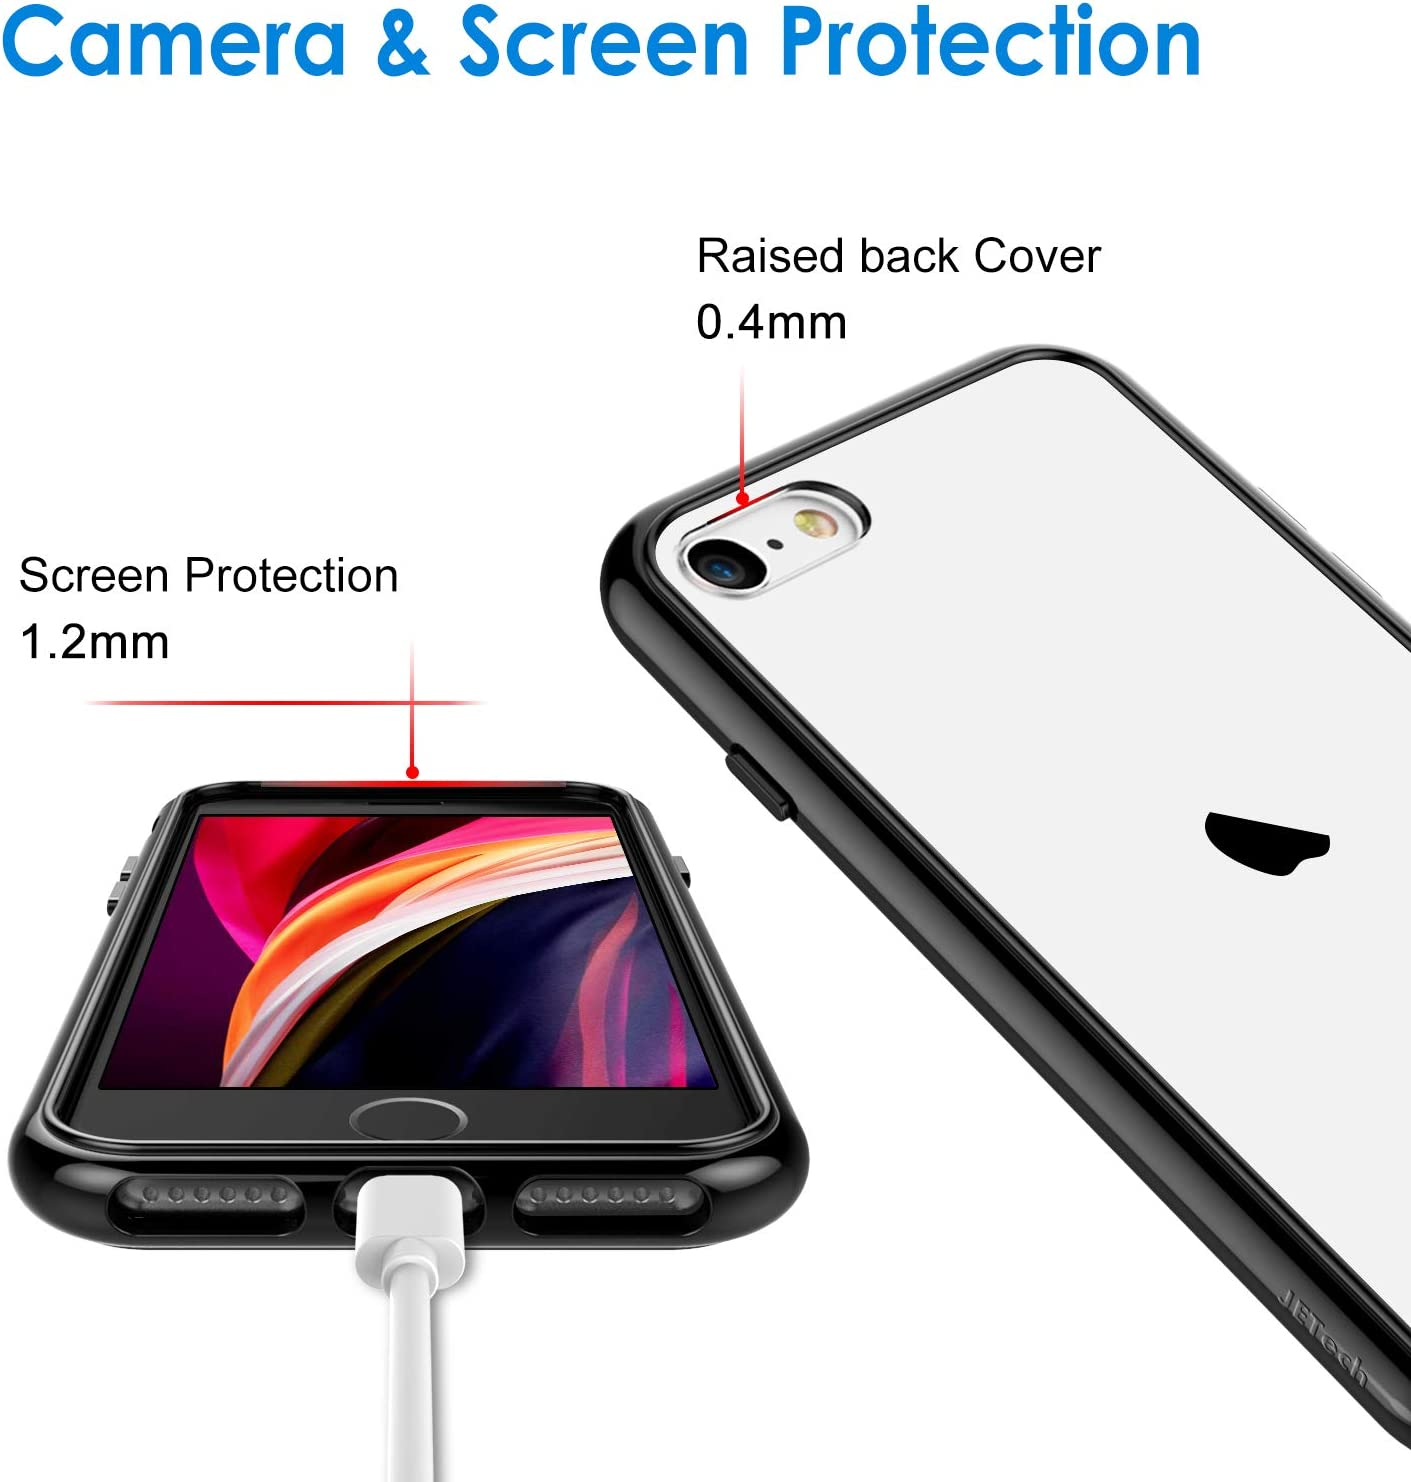 JETech Case for iPhone SE 2020 2nd Generation, iPhone 8 and iPhone 7, 4.7-Inch, Shockproof Bumper Cover, Anti-Scratch Clear Back, Black